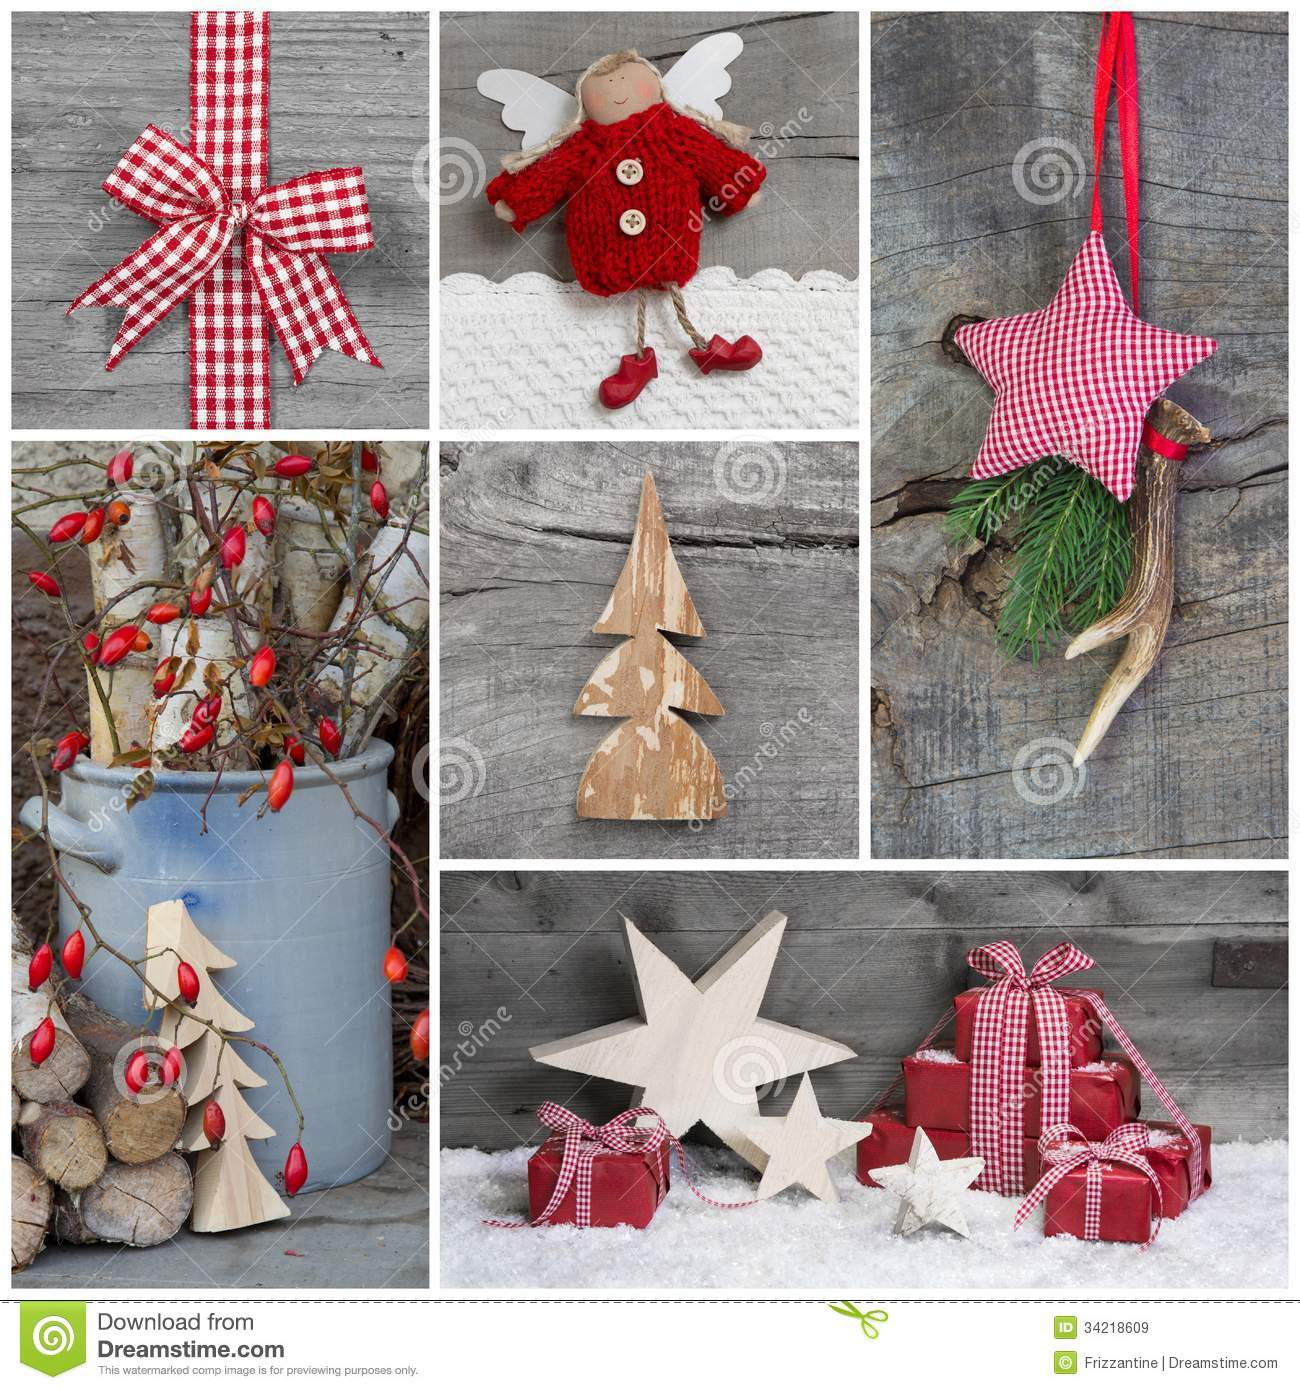 Collage Of Christmas Photos And Decorations On Grey Wooden